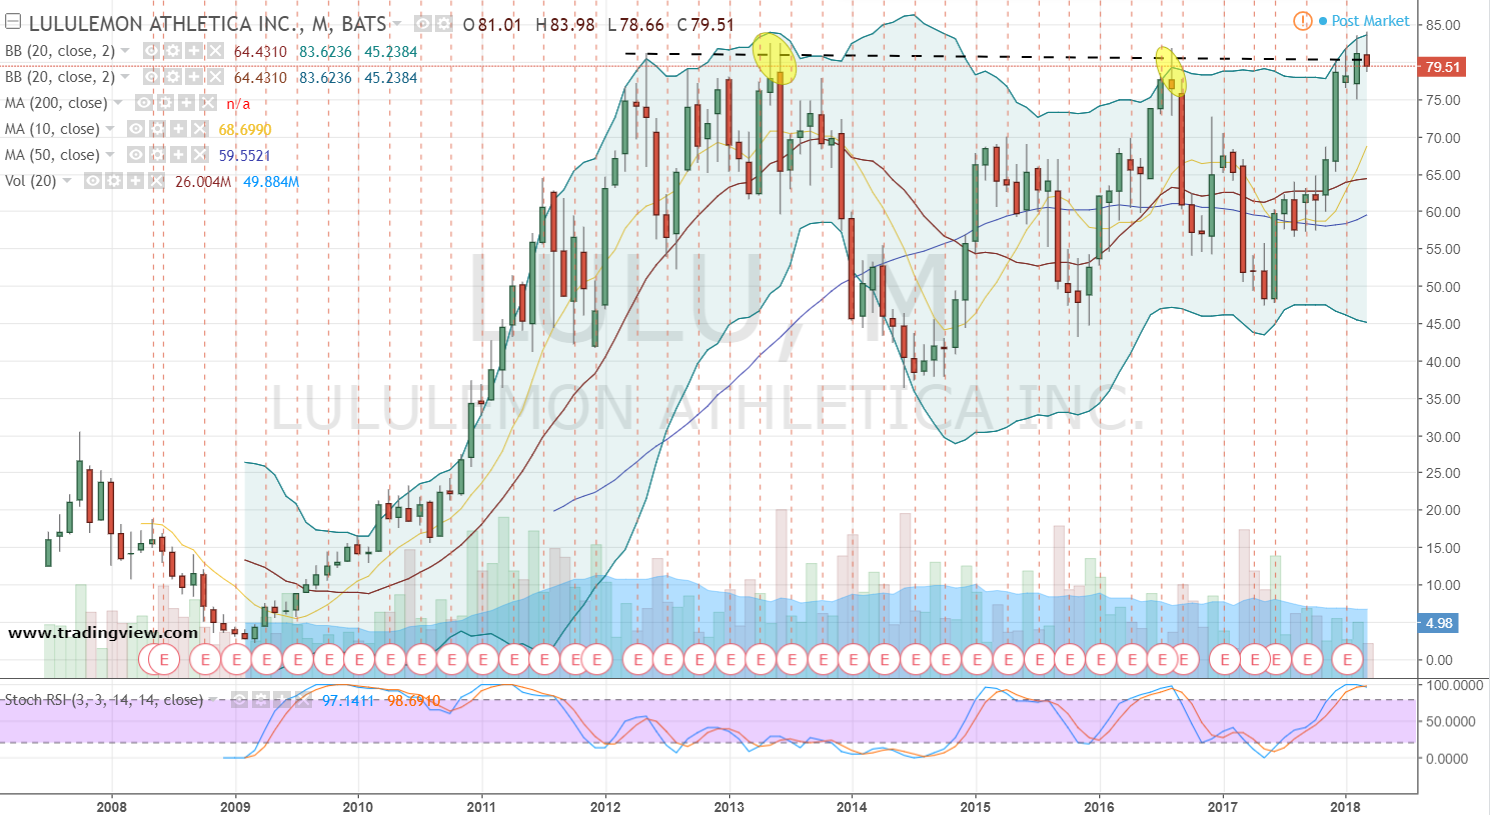 Technical Signals in View for Lululemon Athletica (LULU)